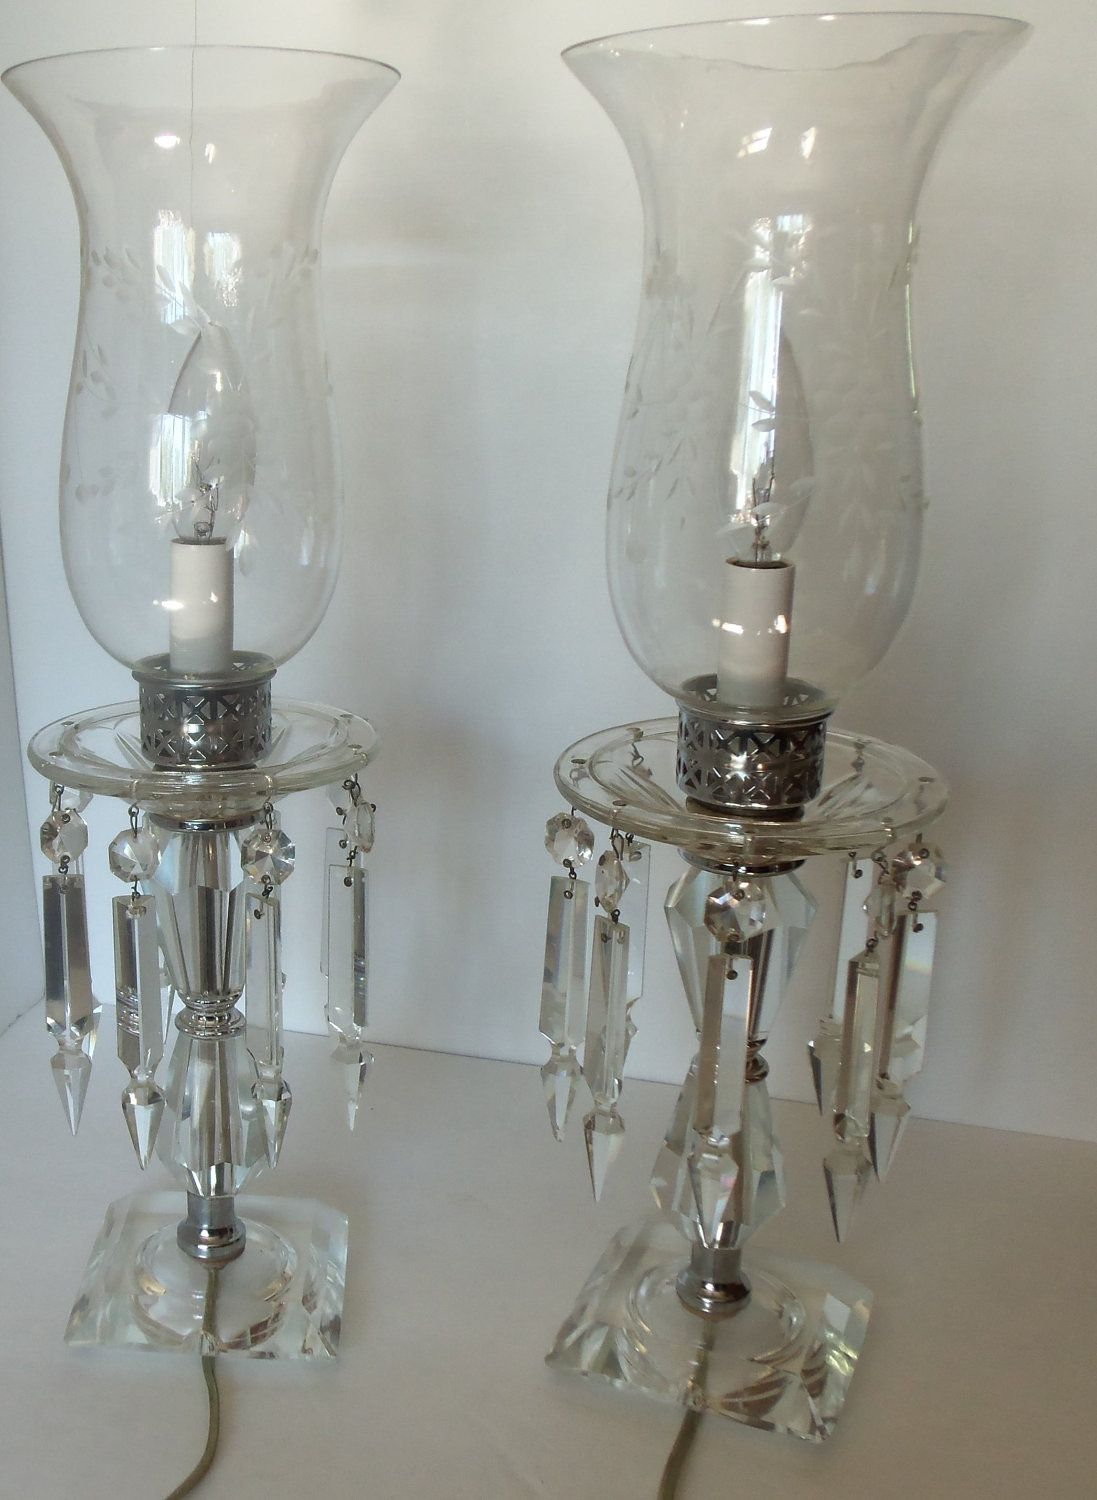 Antique Hurricane Lamps | Beautiful Vintage Crystal Hurricane Lamps With  Hanging Prisms C. 1940